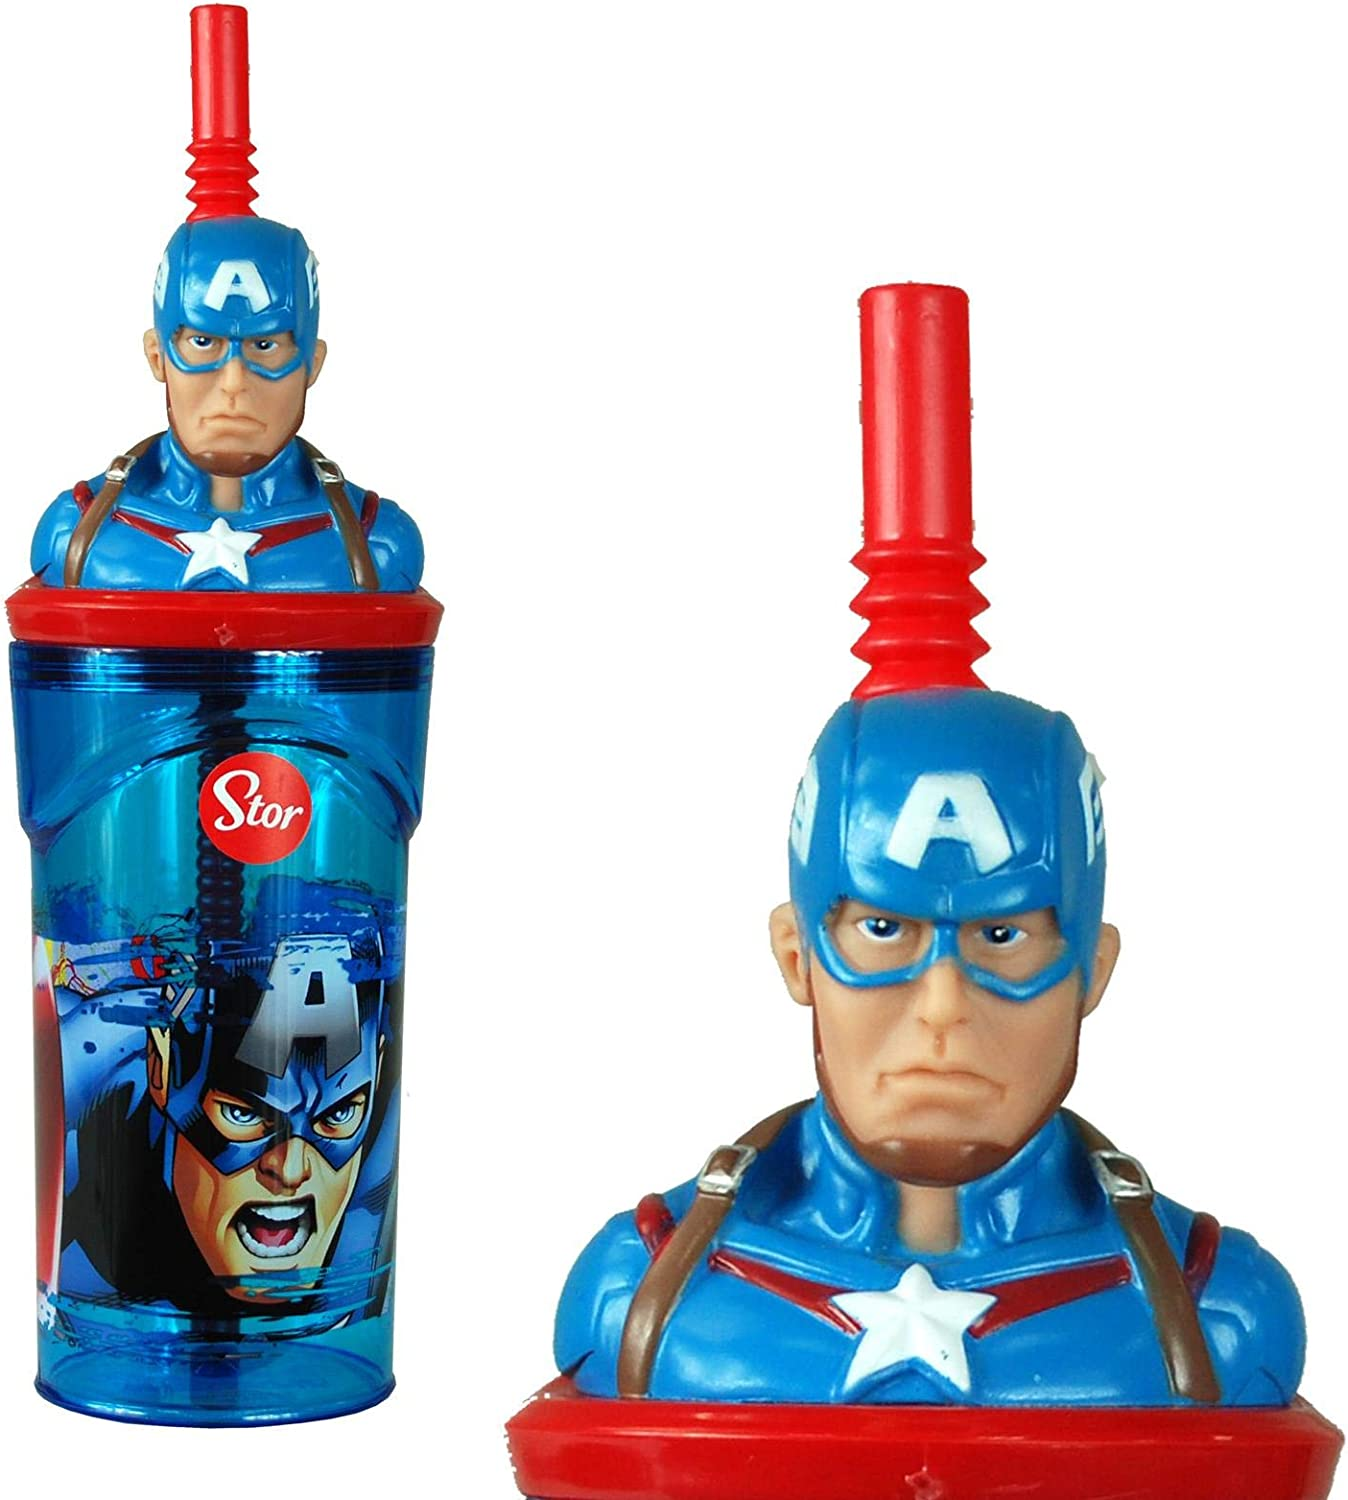 7cm Diameter x 14cm Height Sturdy Novelty Enclosed Drinking Cup. Captain America 3D Figurine Plastic Tumbler Beaker with Flexi Straw 360ml